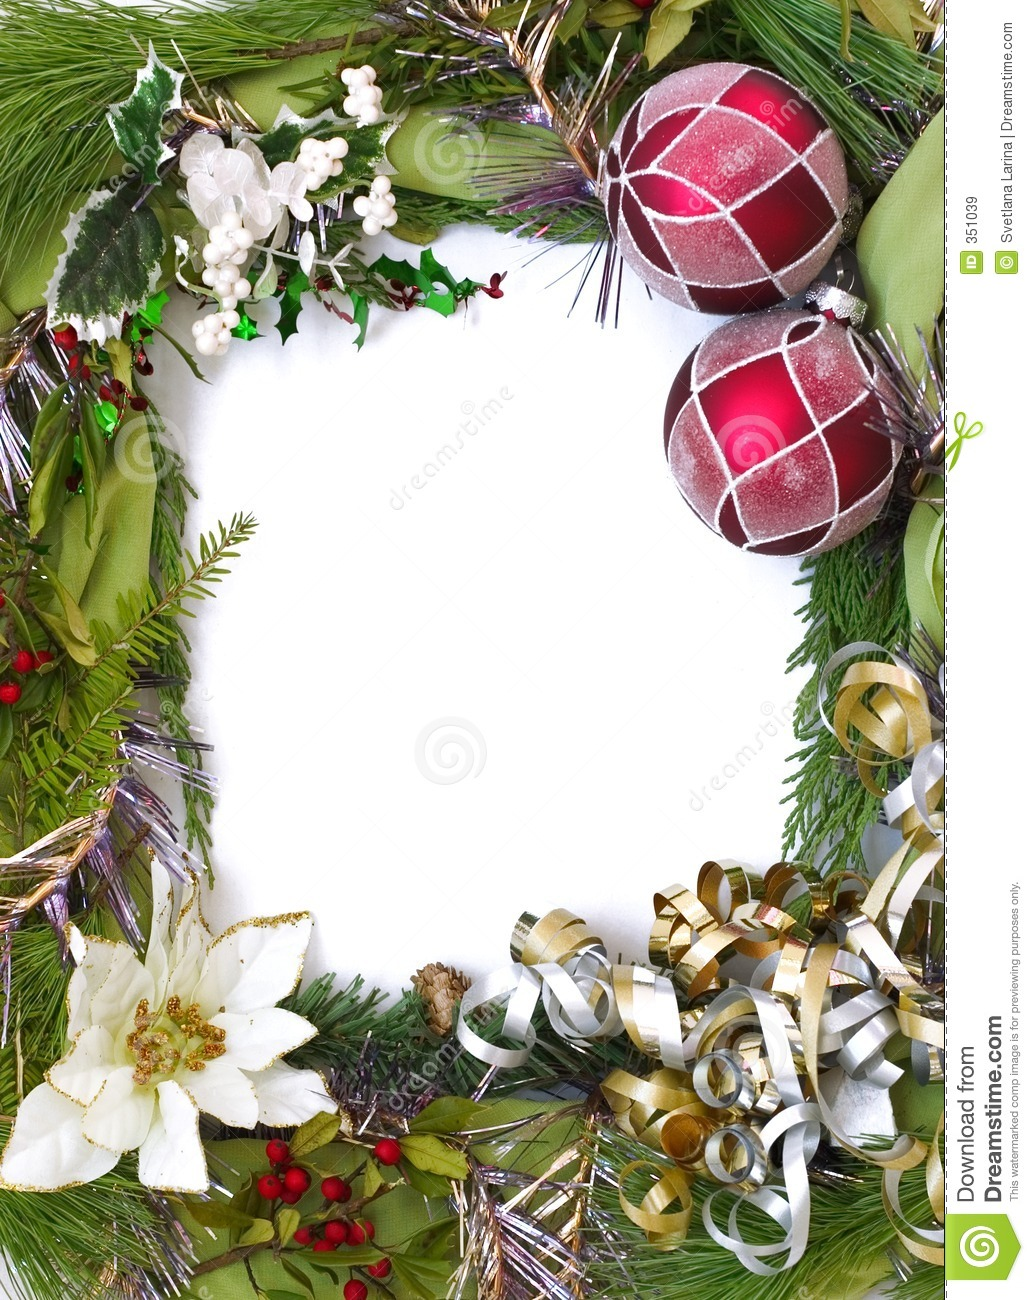 Cuadros Para Poner Fotos Gratis Vertical Empty Christmas Frame Royalty Free Stock Images